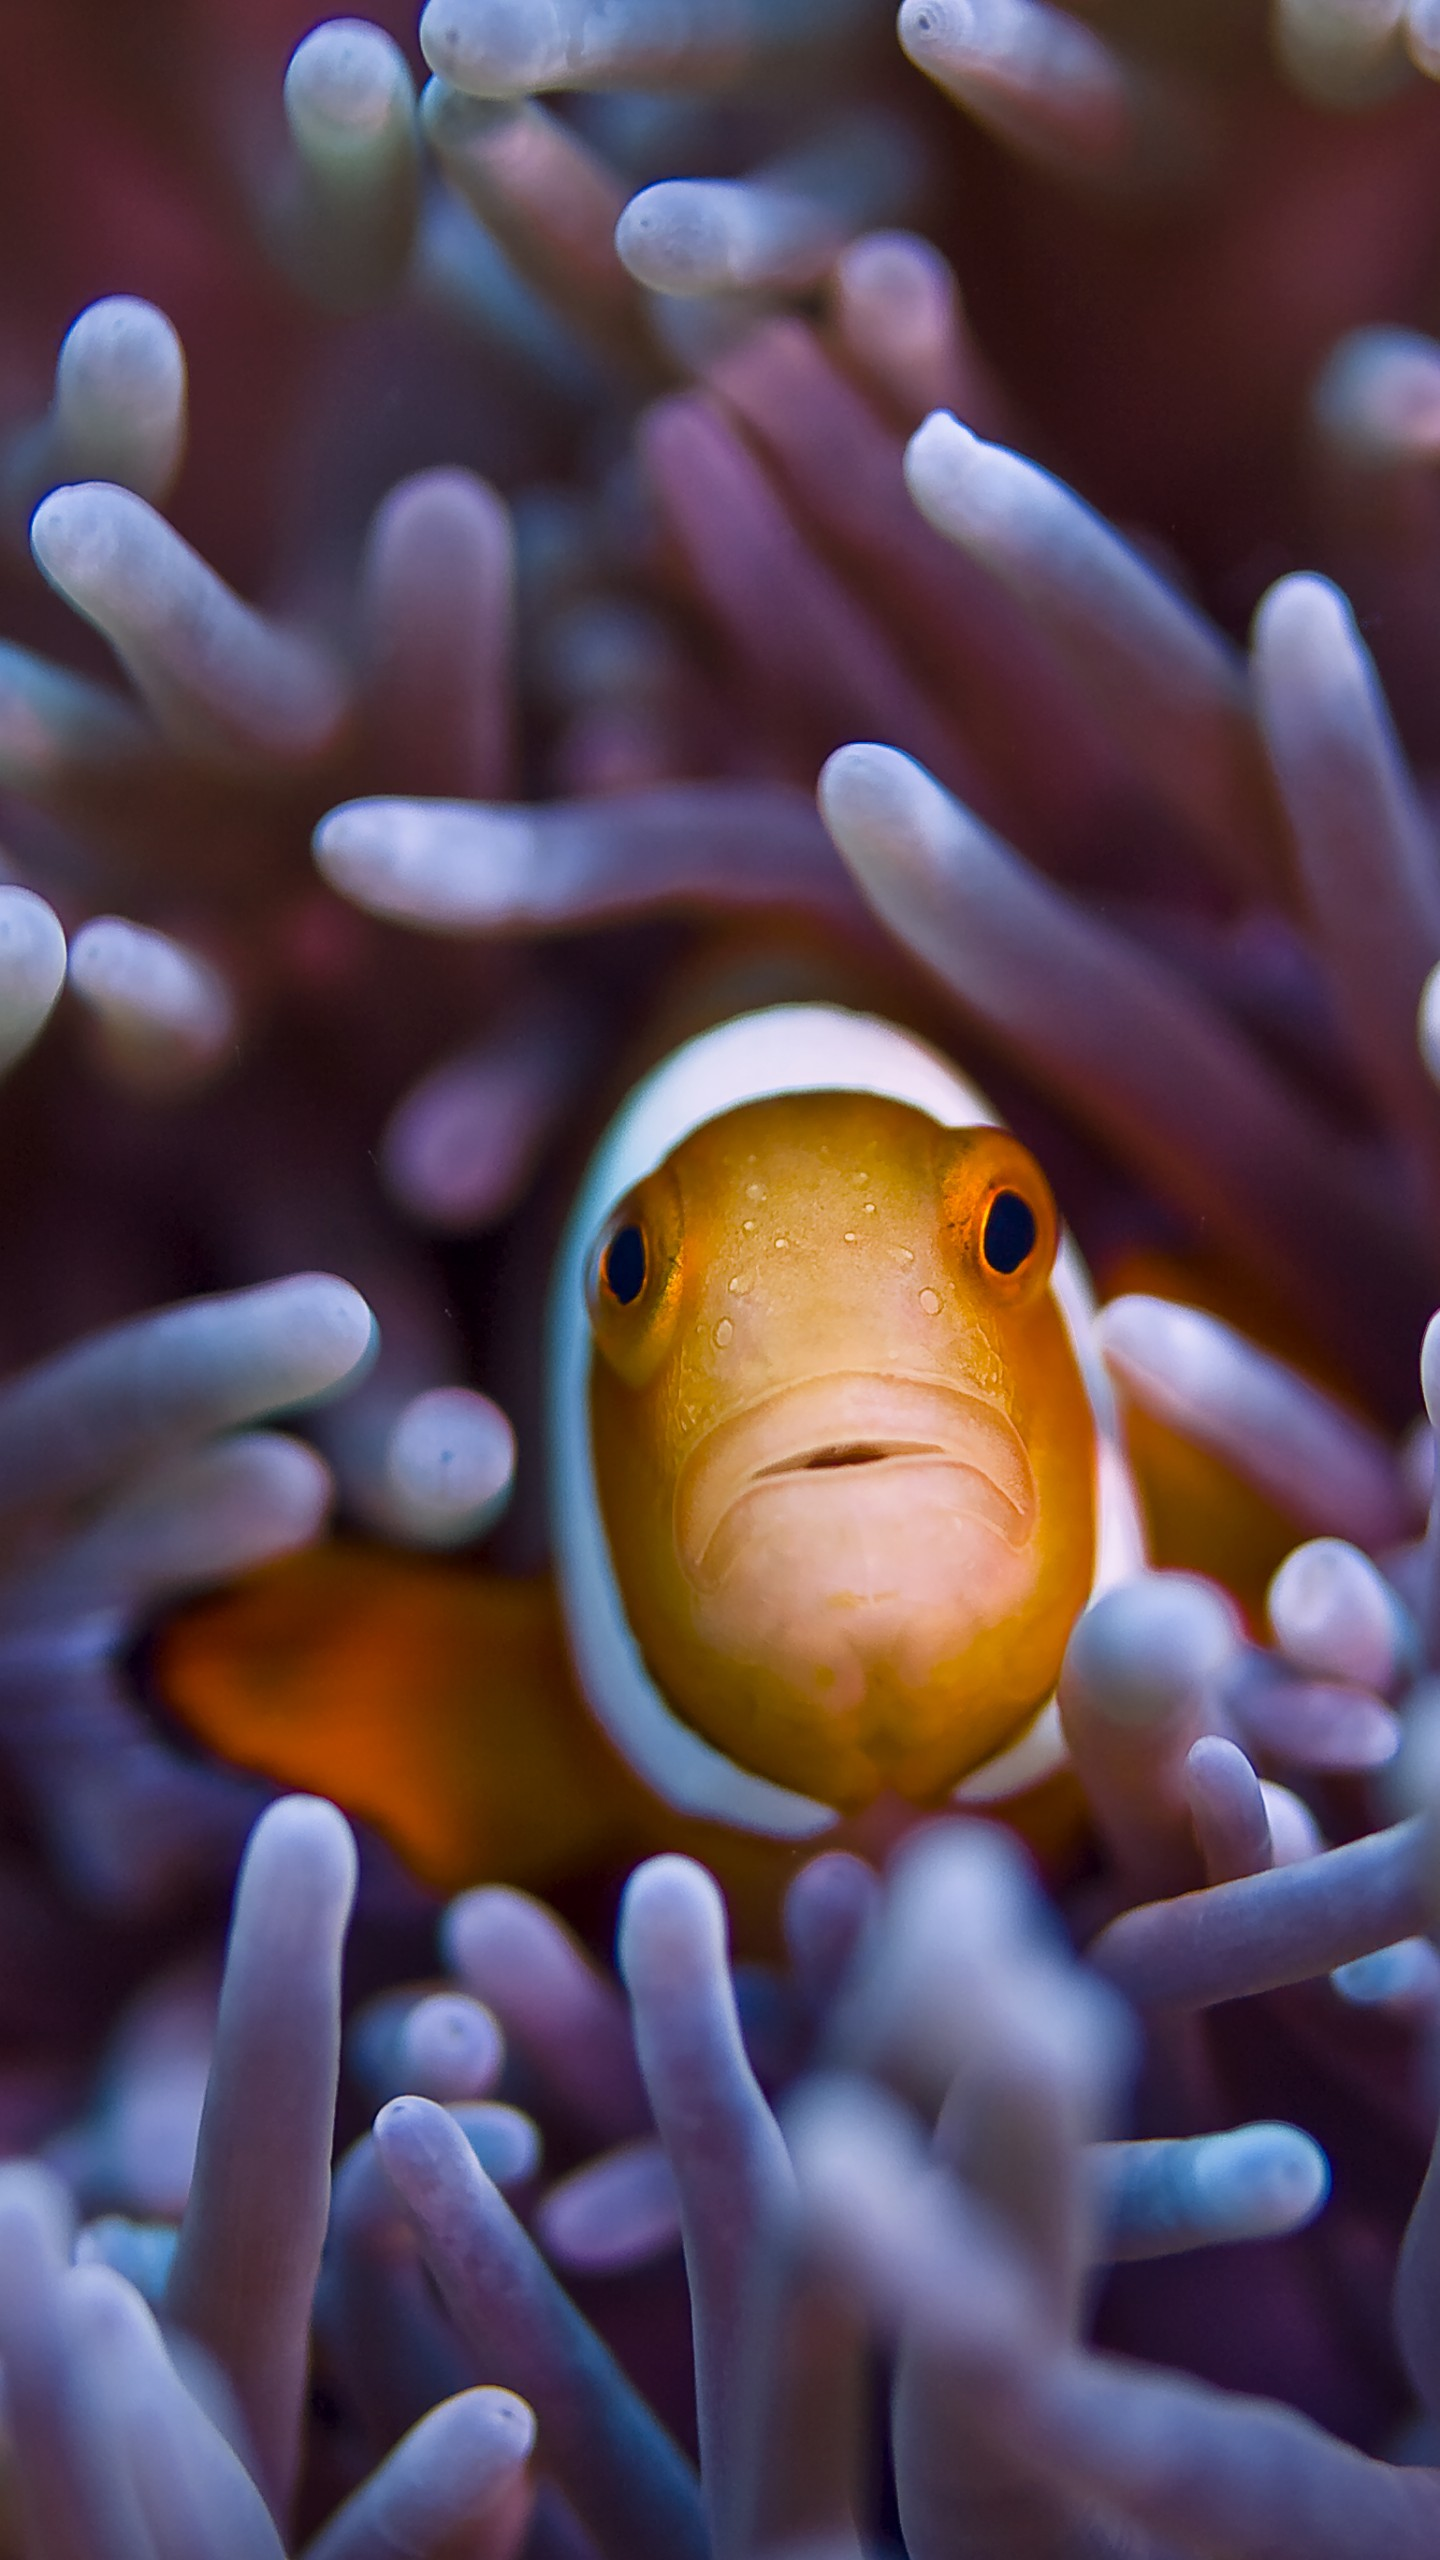 Apple Clownfish Wallpaper Iphone X Обои Рыба клоун 5k 4k Бали дайвинг туризм океан